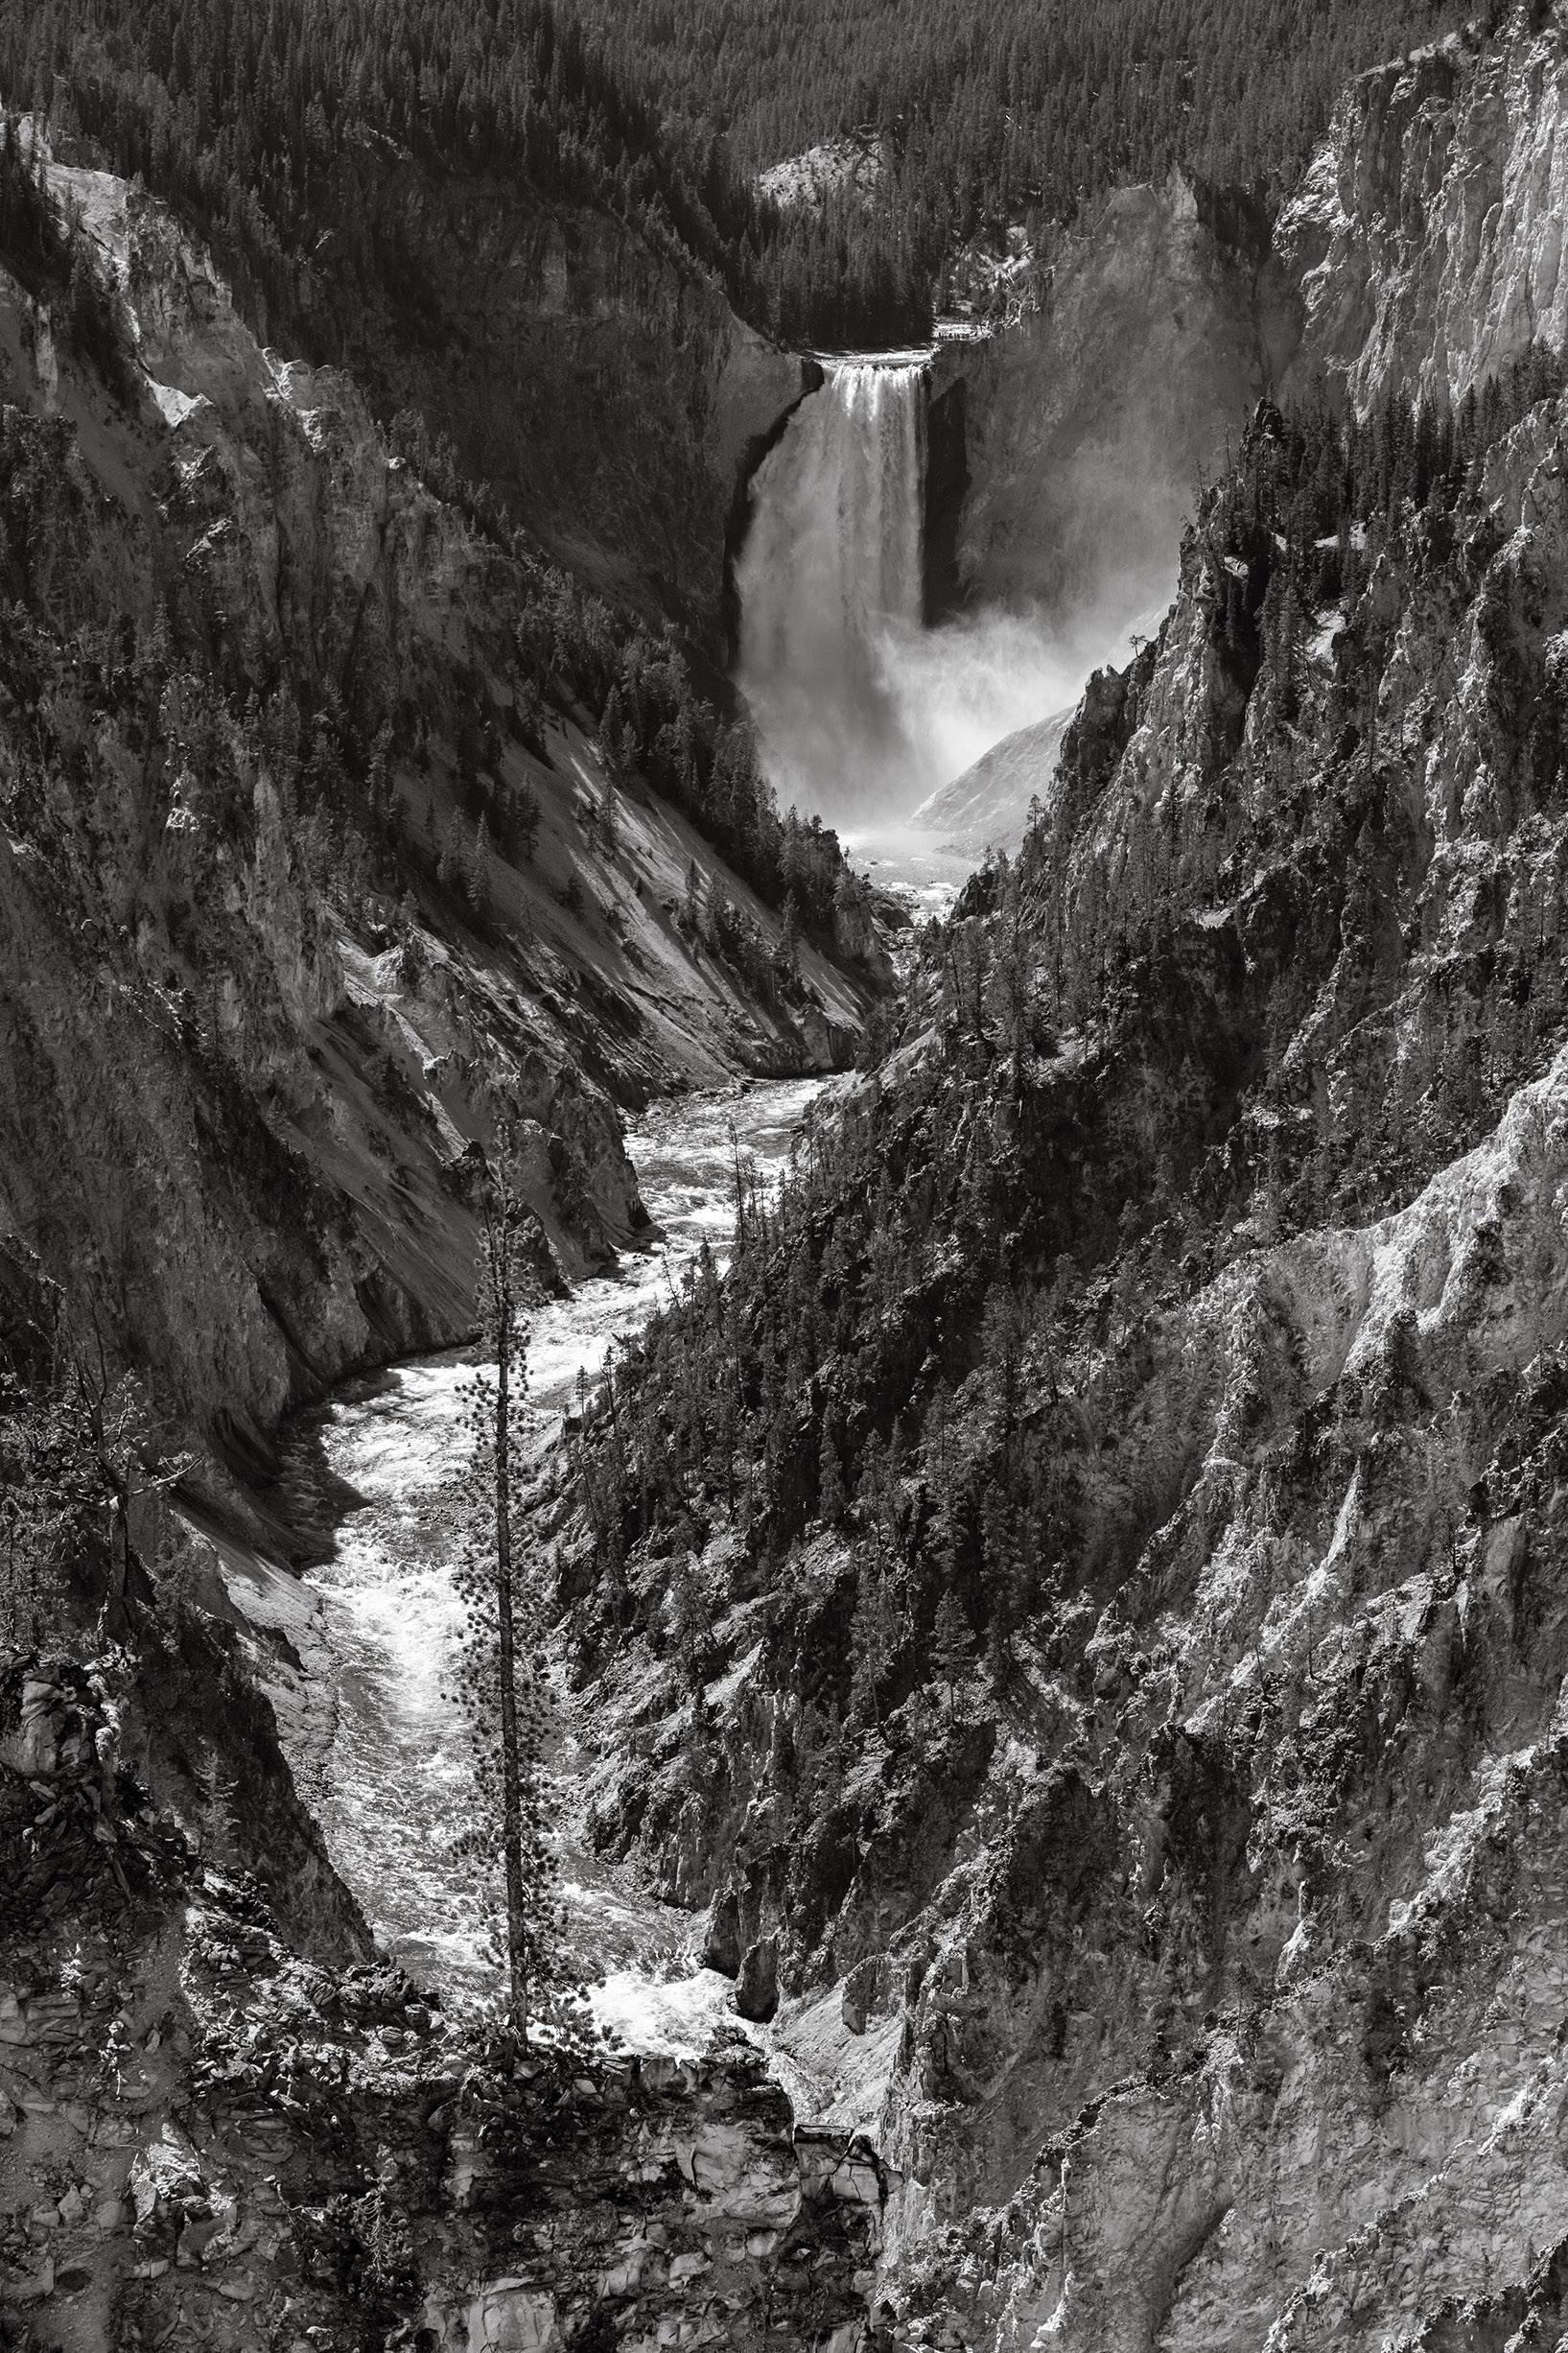 Yellowstone Falls, from Artist's Point. Nikon D800, Nikkor 24-120mm lens @ 85mm, f9, ISO 250, 1/320 sec.